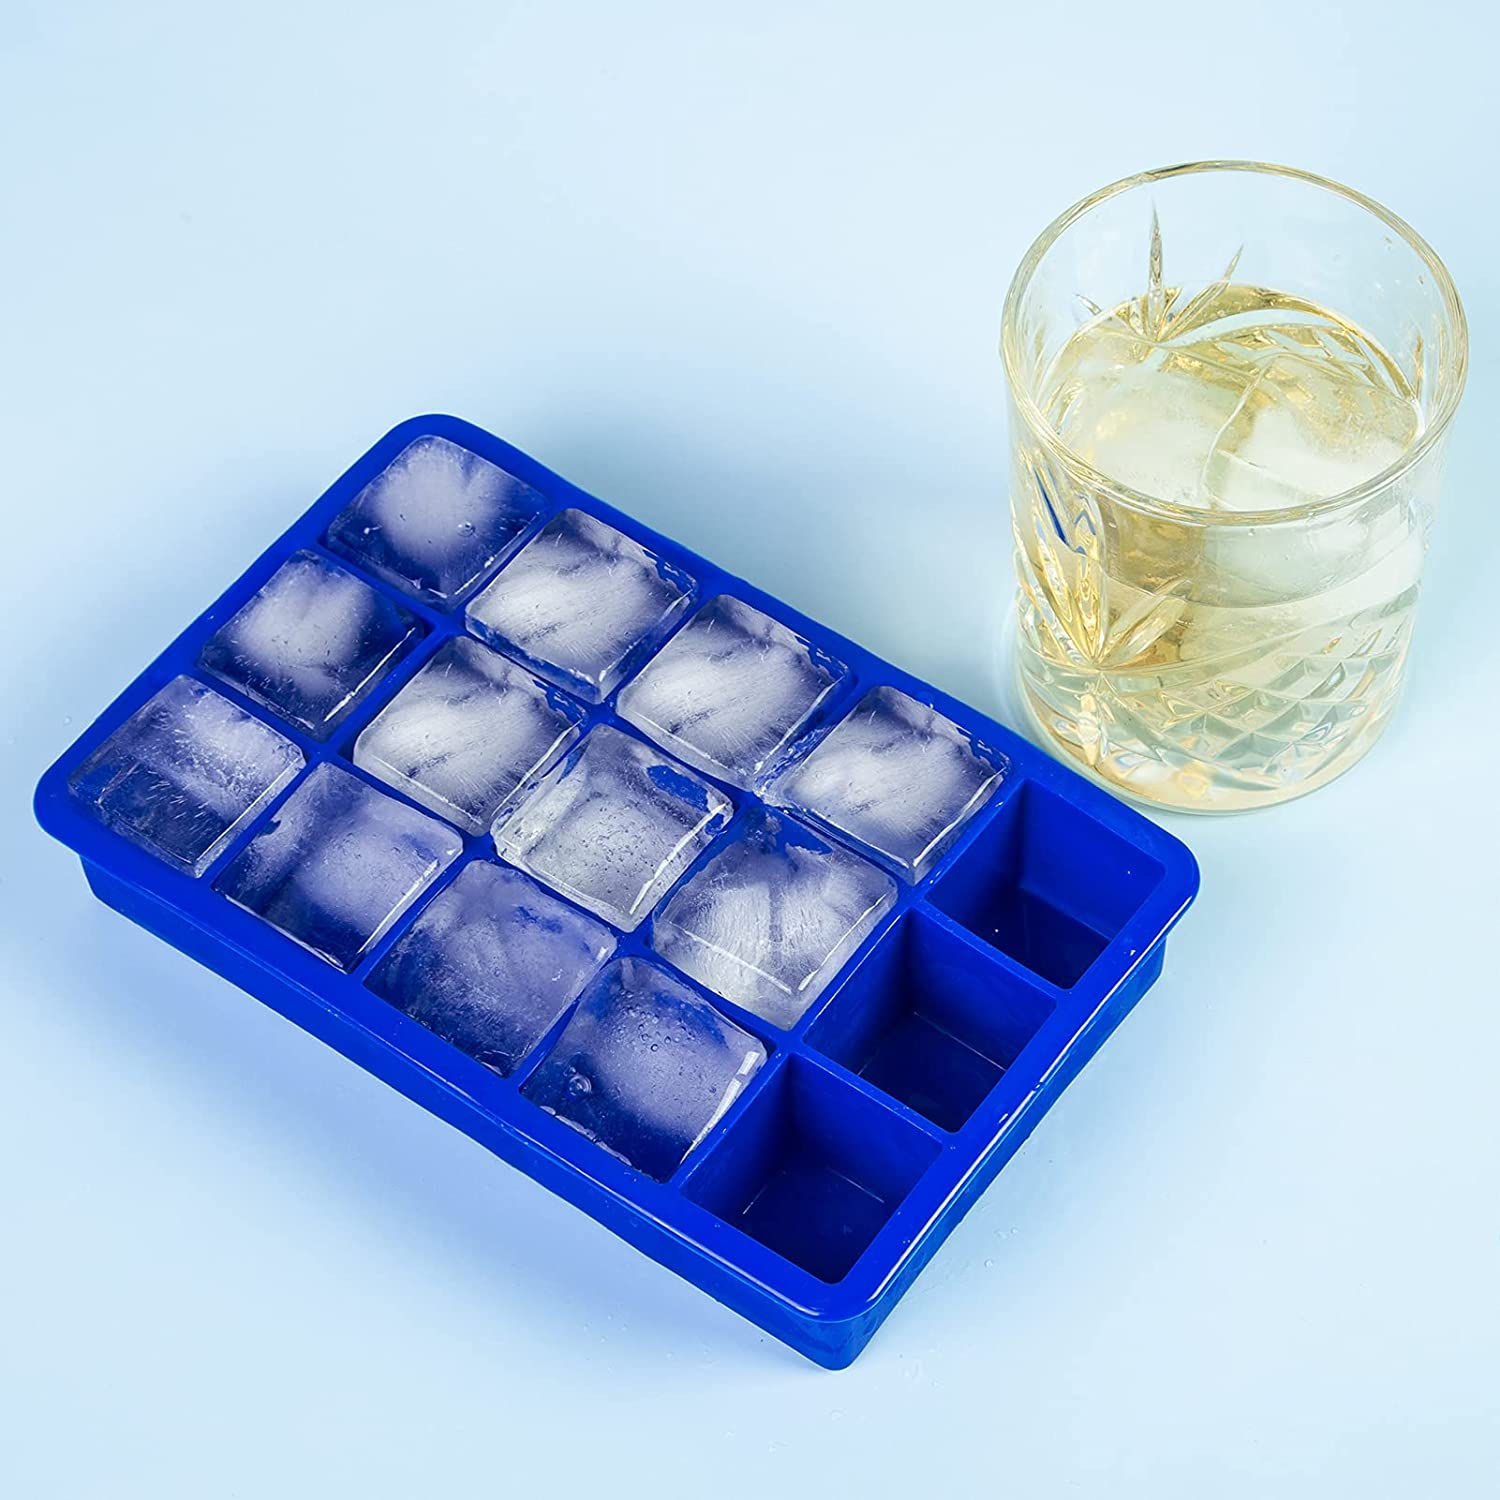 blue square ice cube mold next to cocktail in tumbler